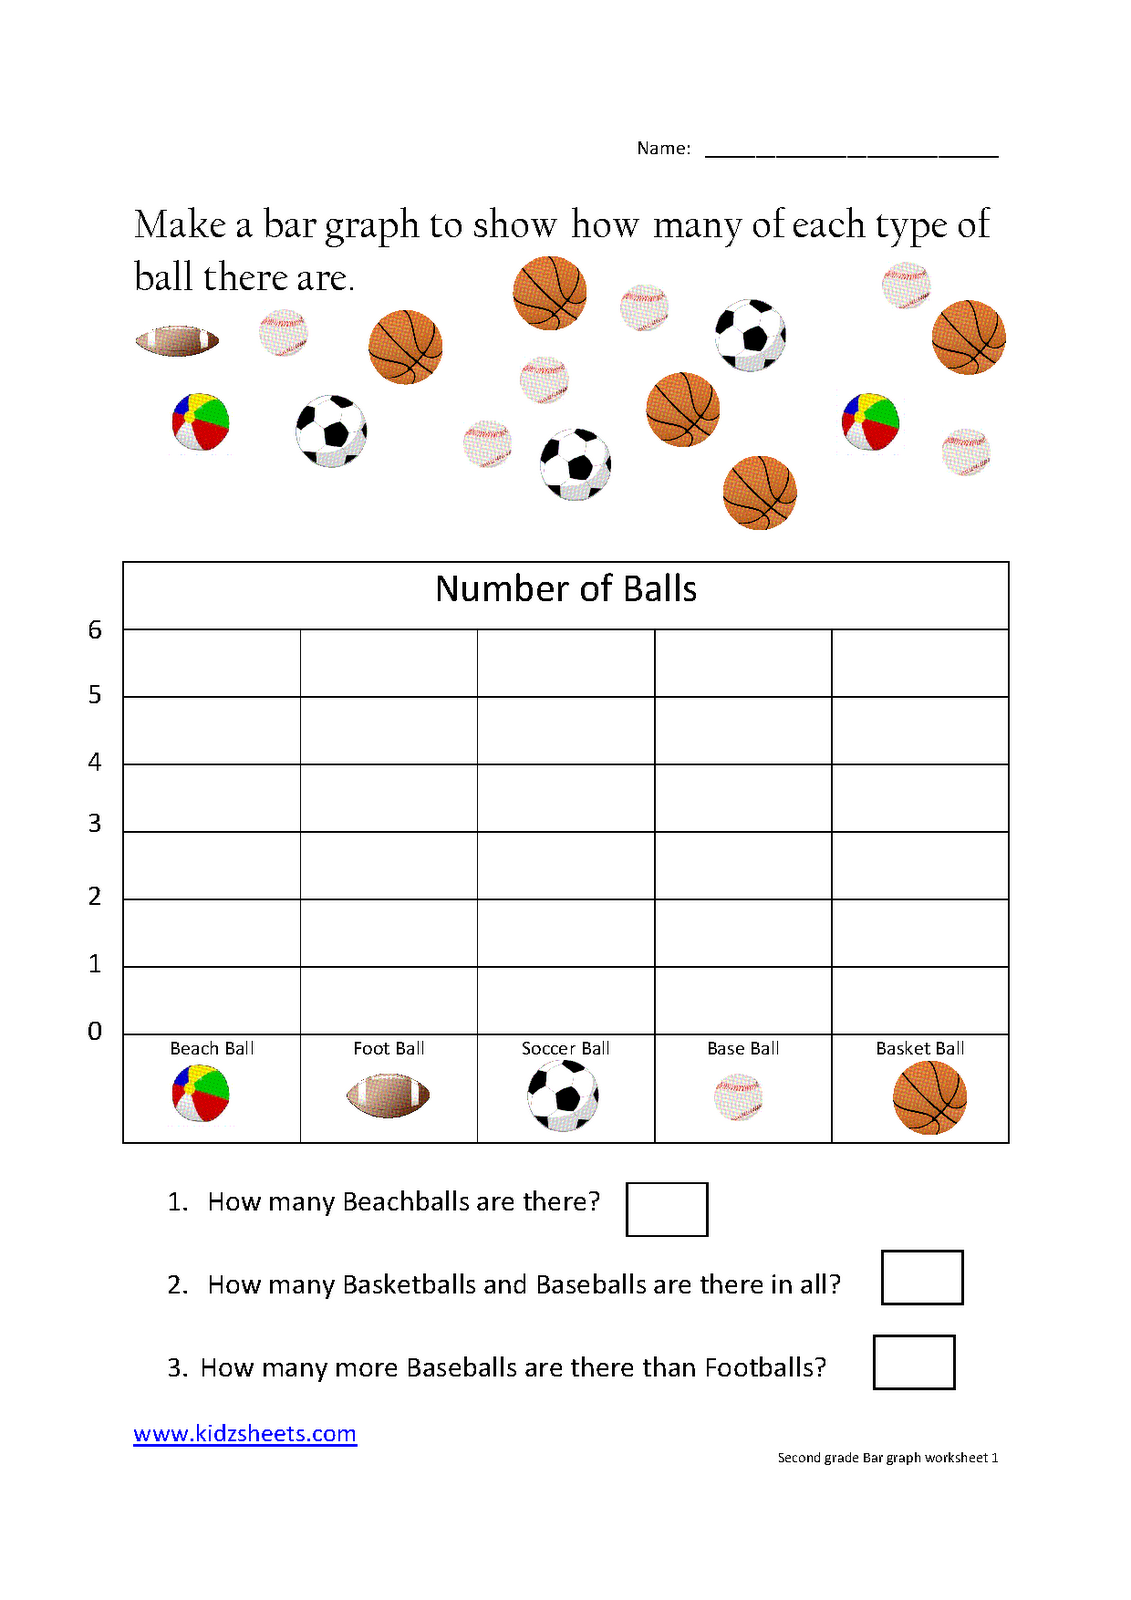 Kidz Worksheets Second Grade Bar Graph Worksheet1 – Picture Graphs Worksheets